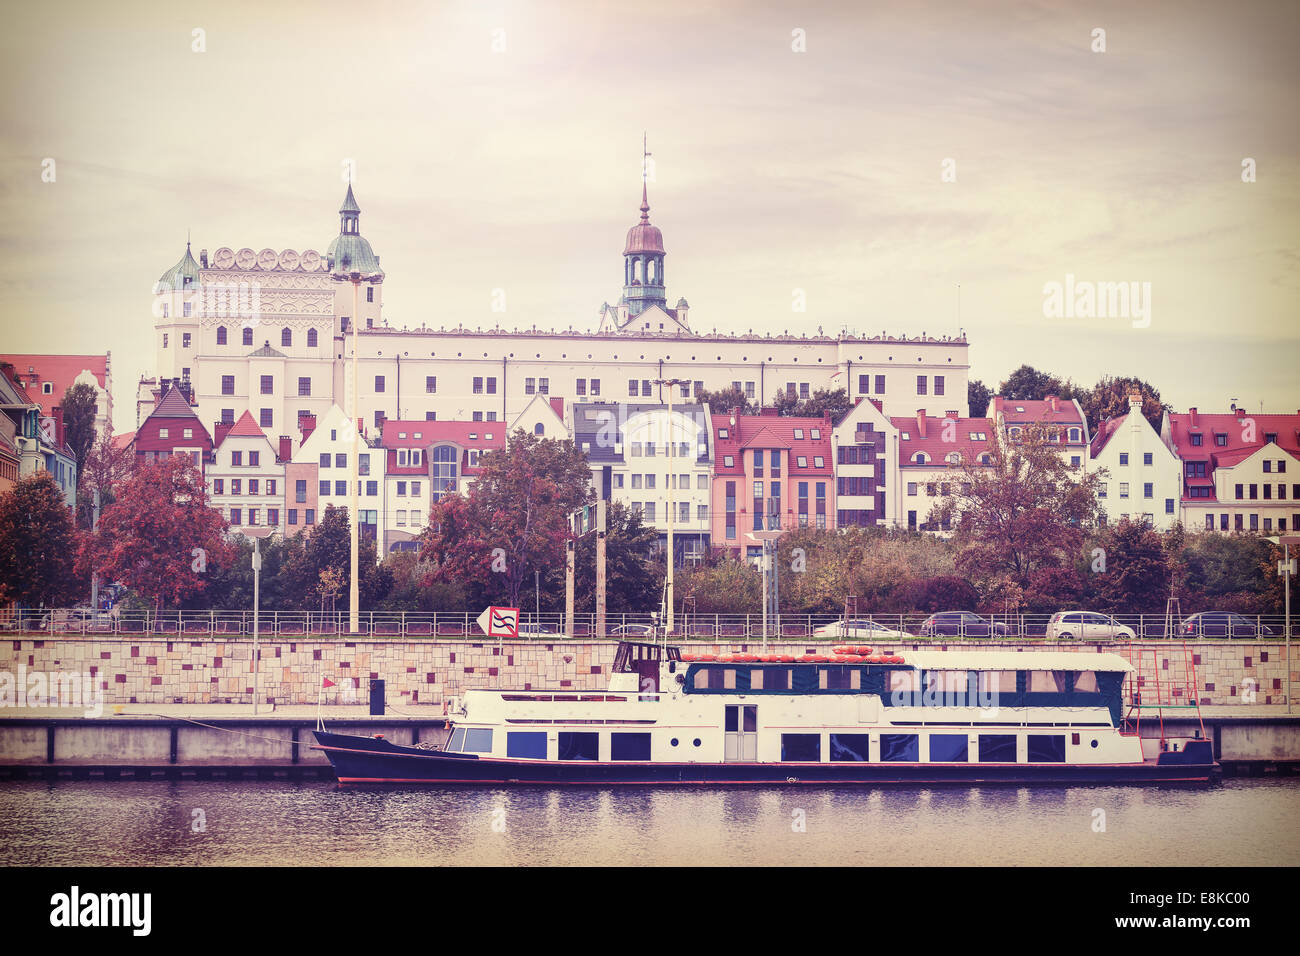 Retro vintage photo filtrée de Szczecin, Pologne voir riverside Photo Stock